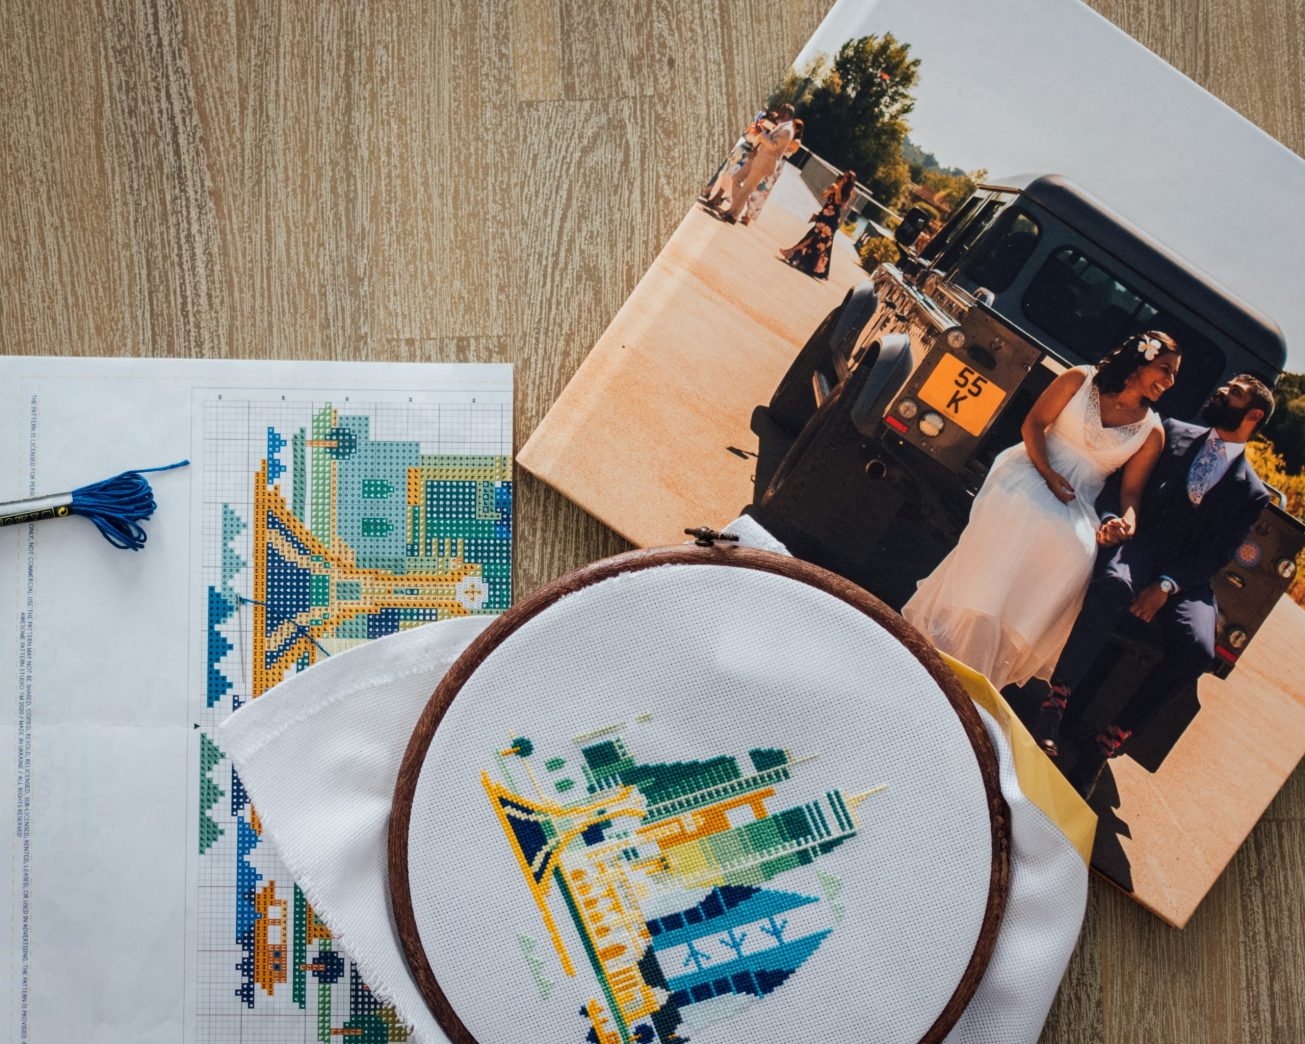 Photo of a wedding album and cross-stitch pattern on a coffee table.